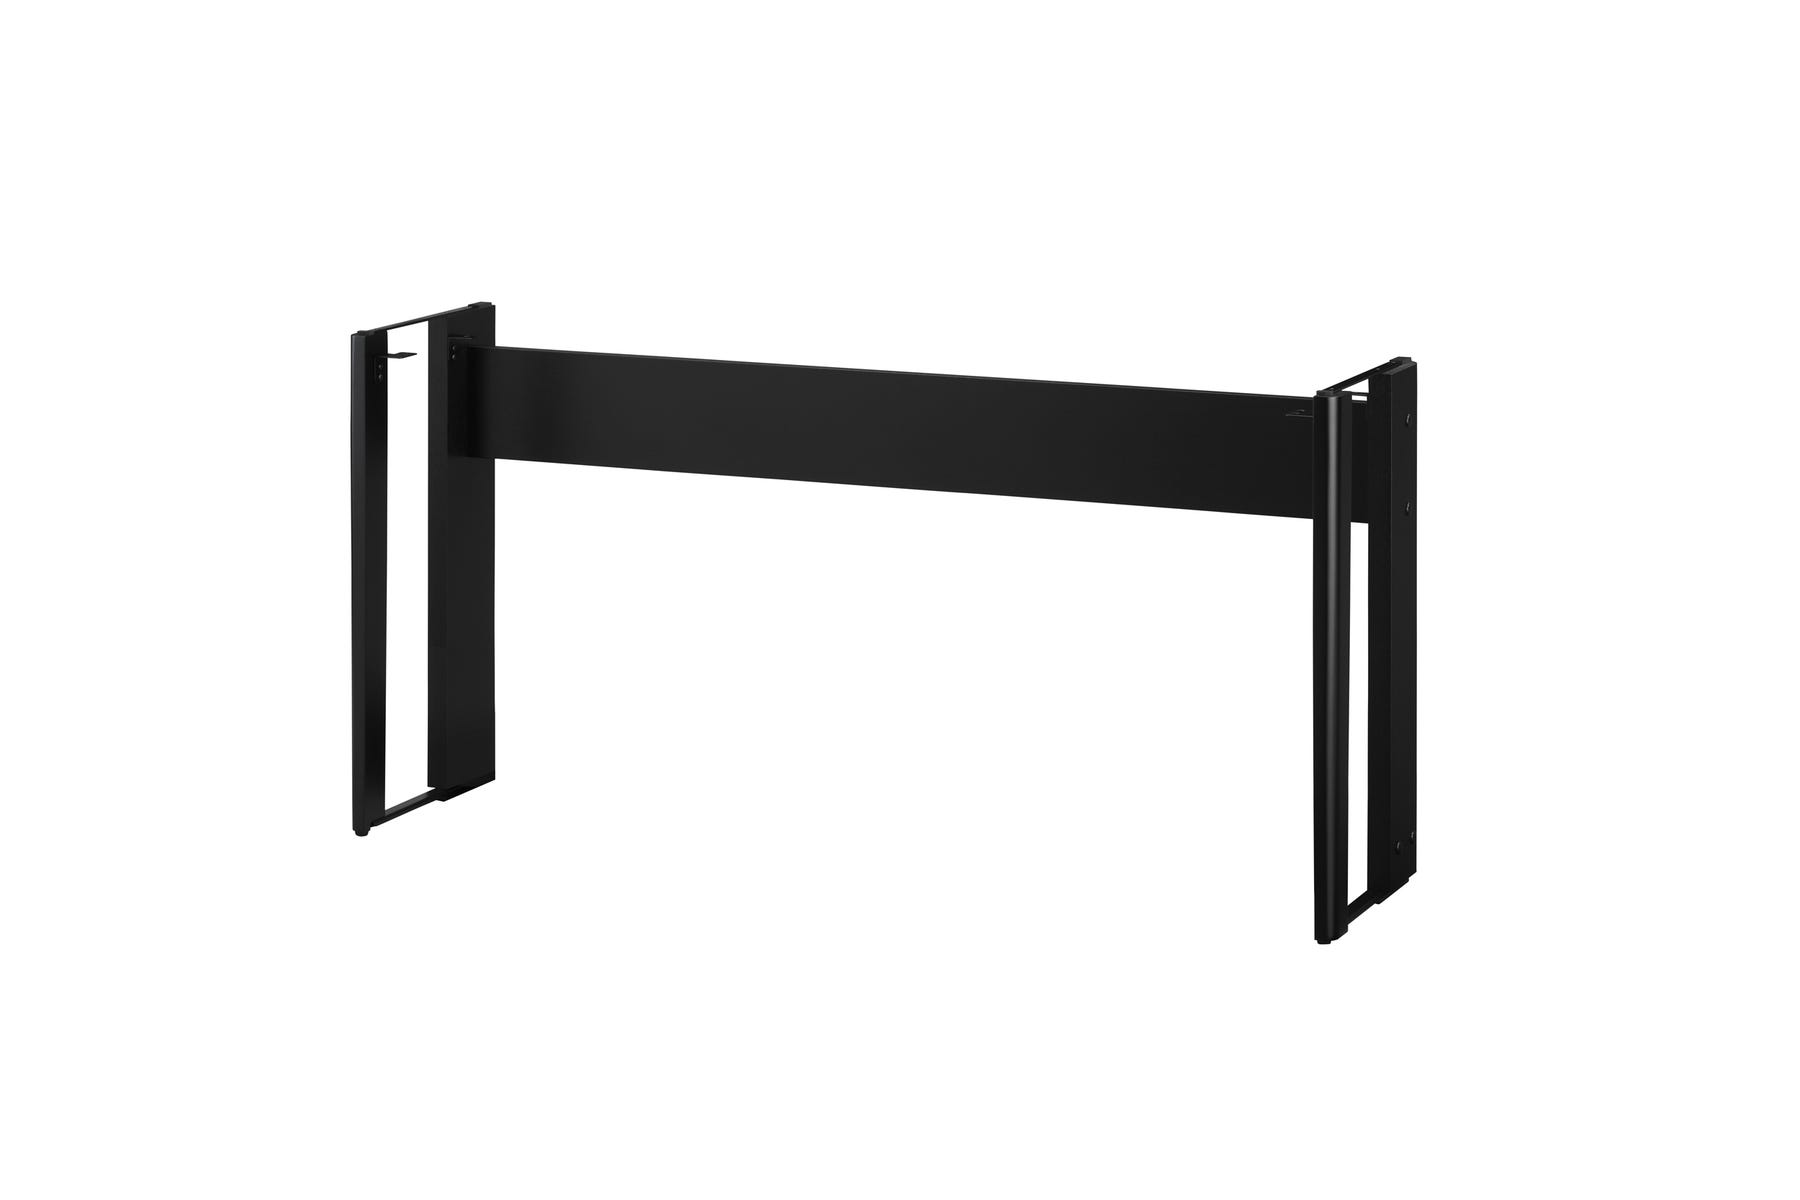 Kawai HM5 Designer Stand for ES920 (Stand only)